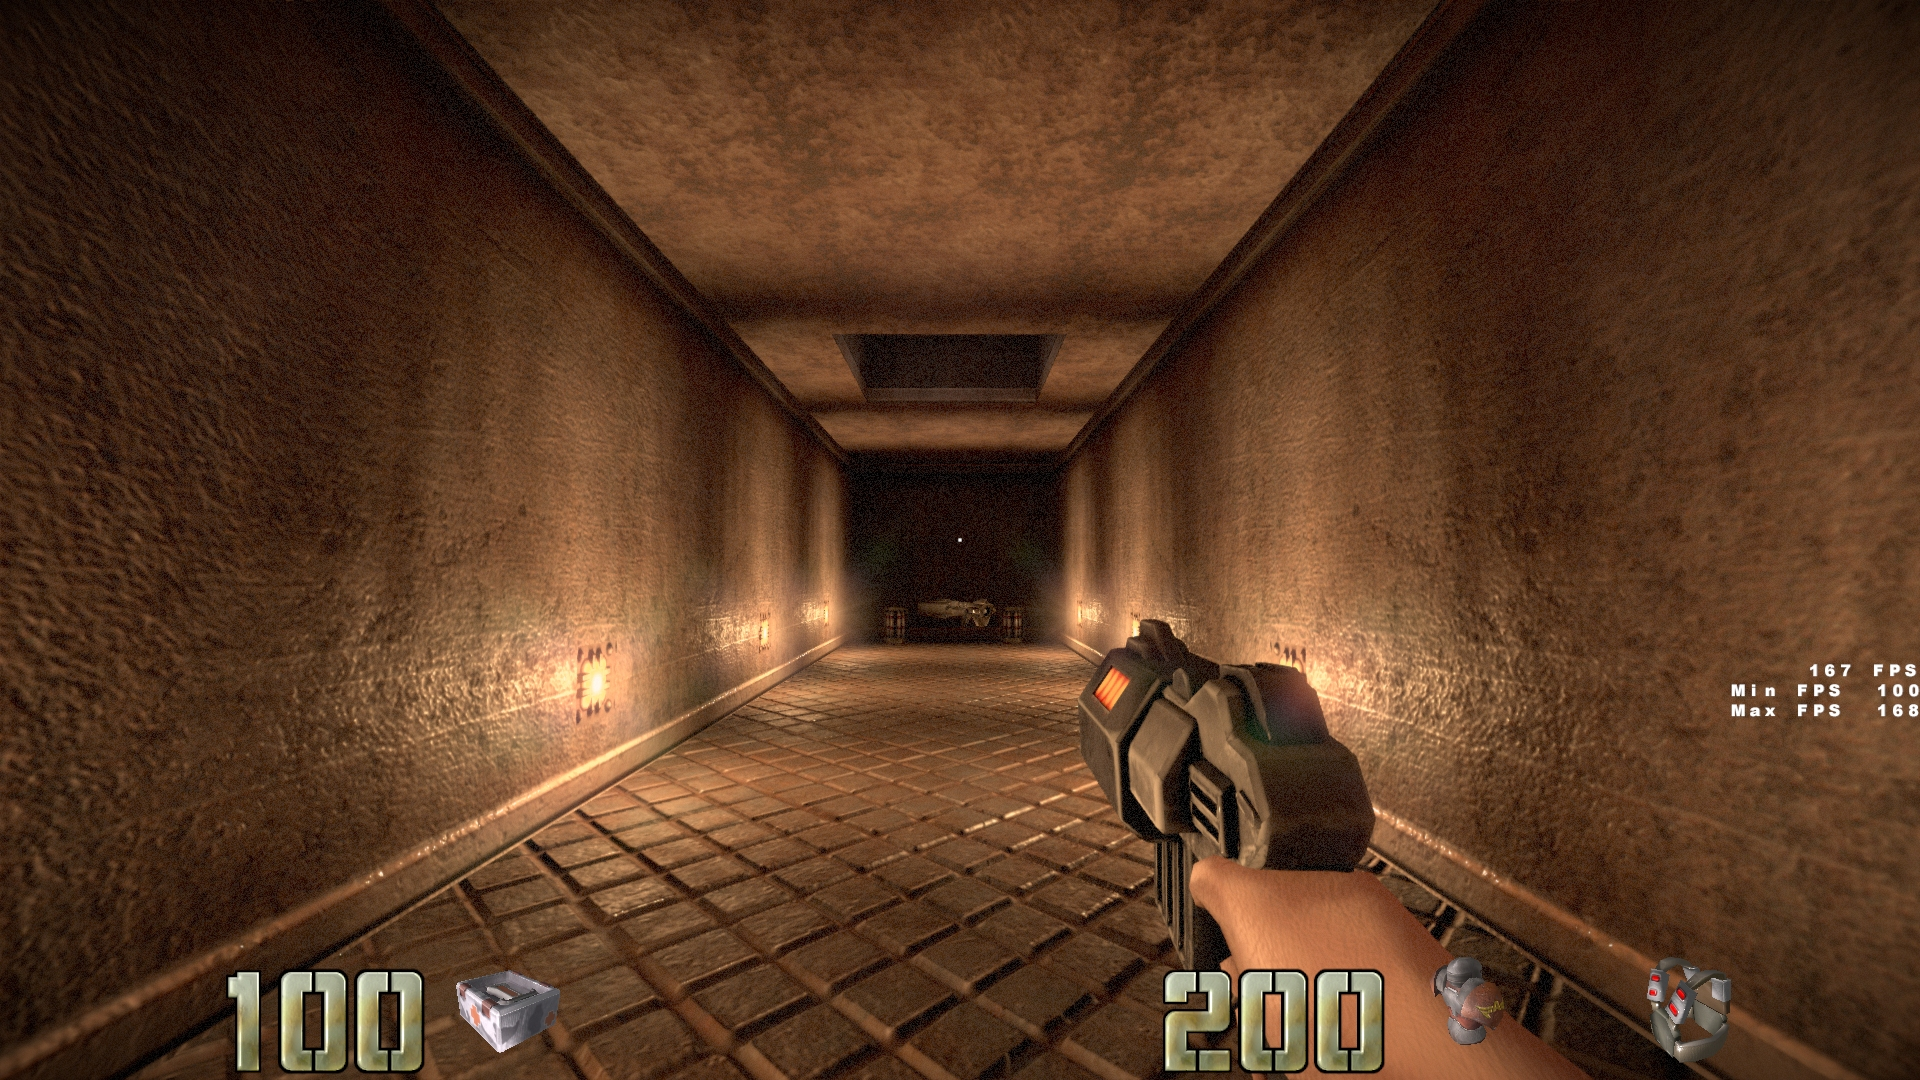 q2xp128beta file - quake2xp mod for Quake 2 - Mod DB